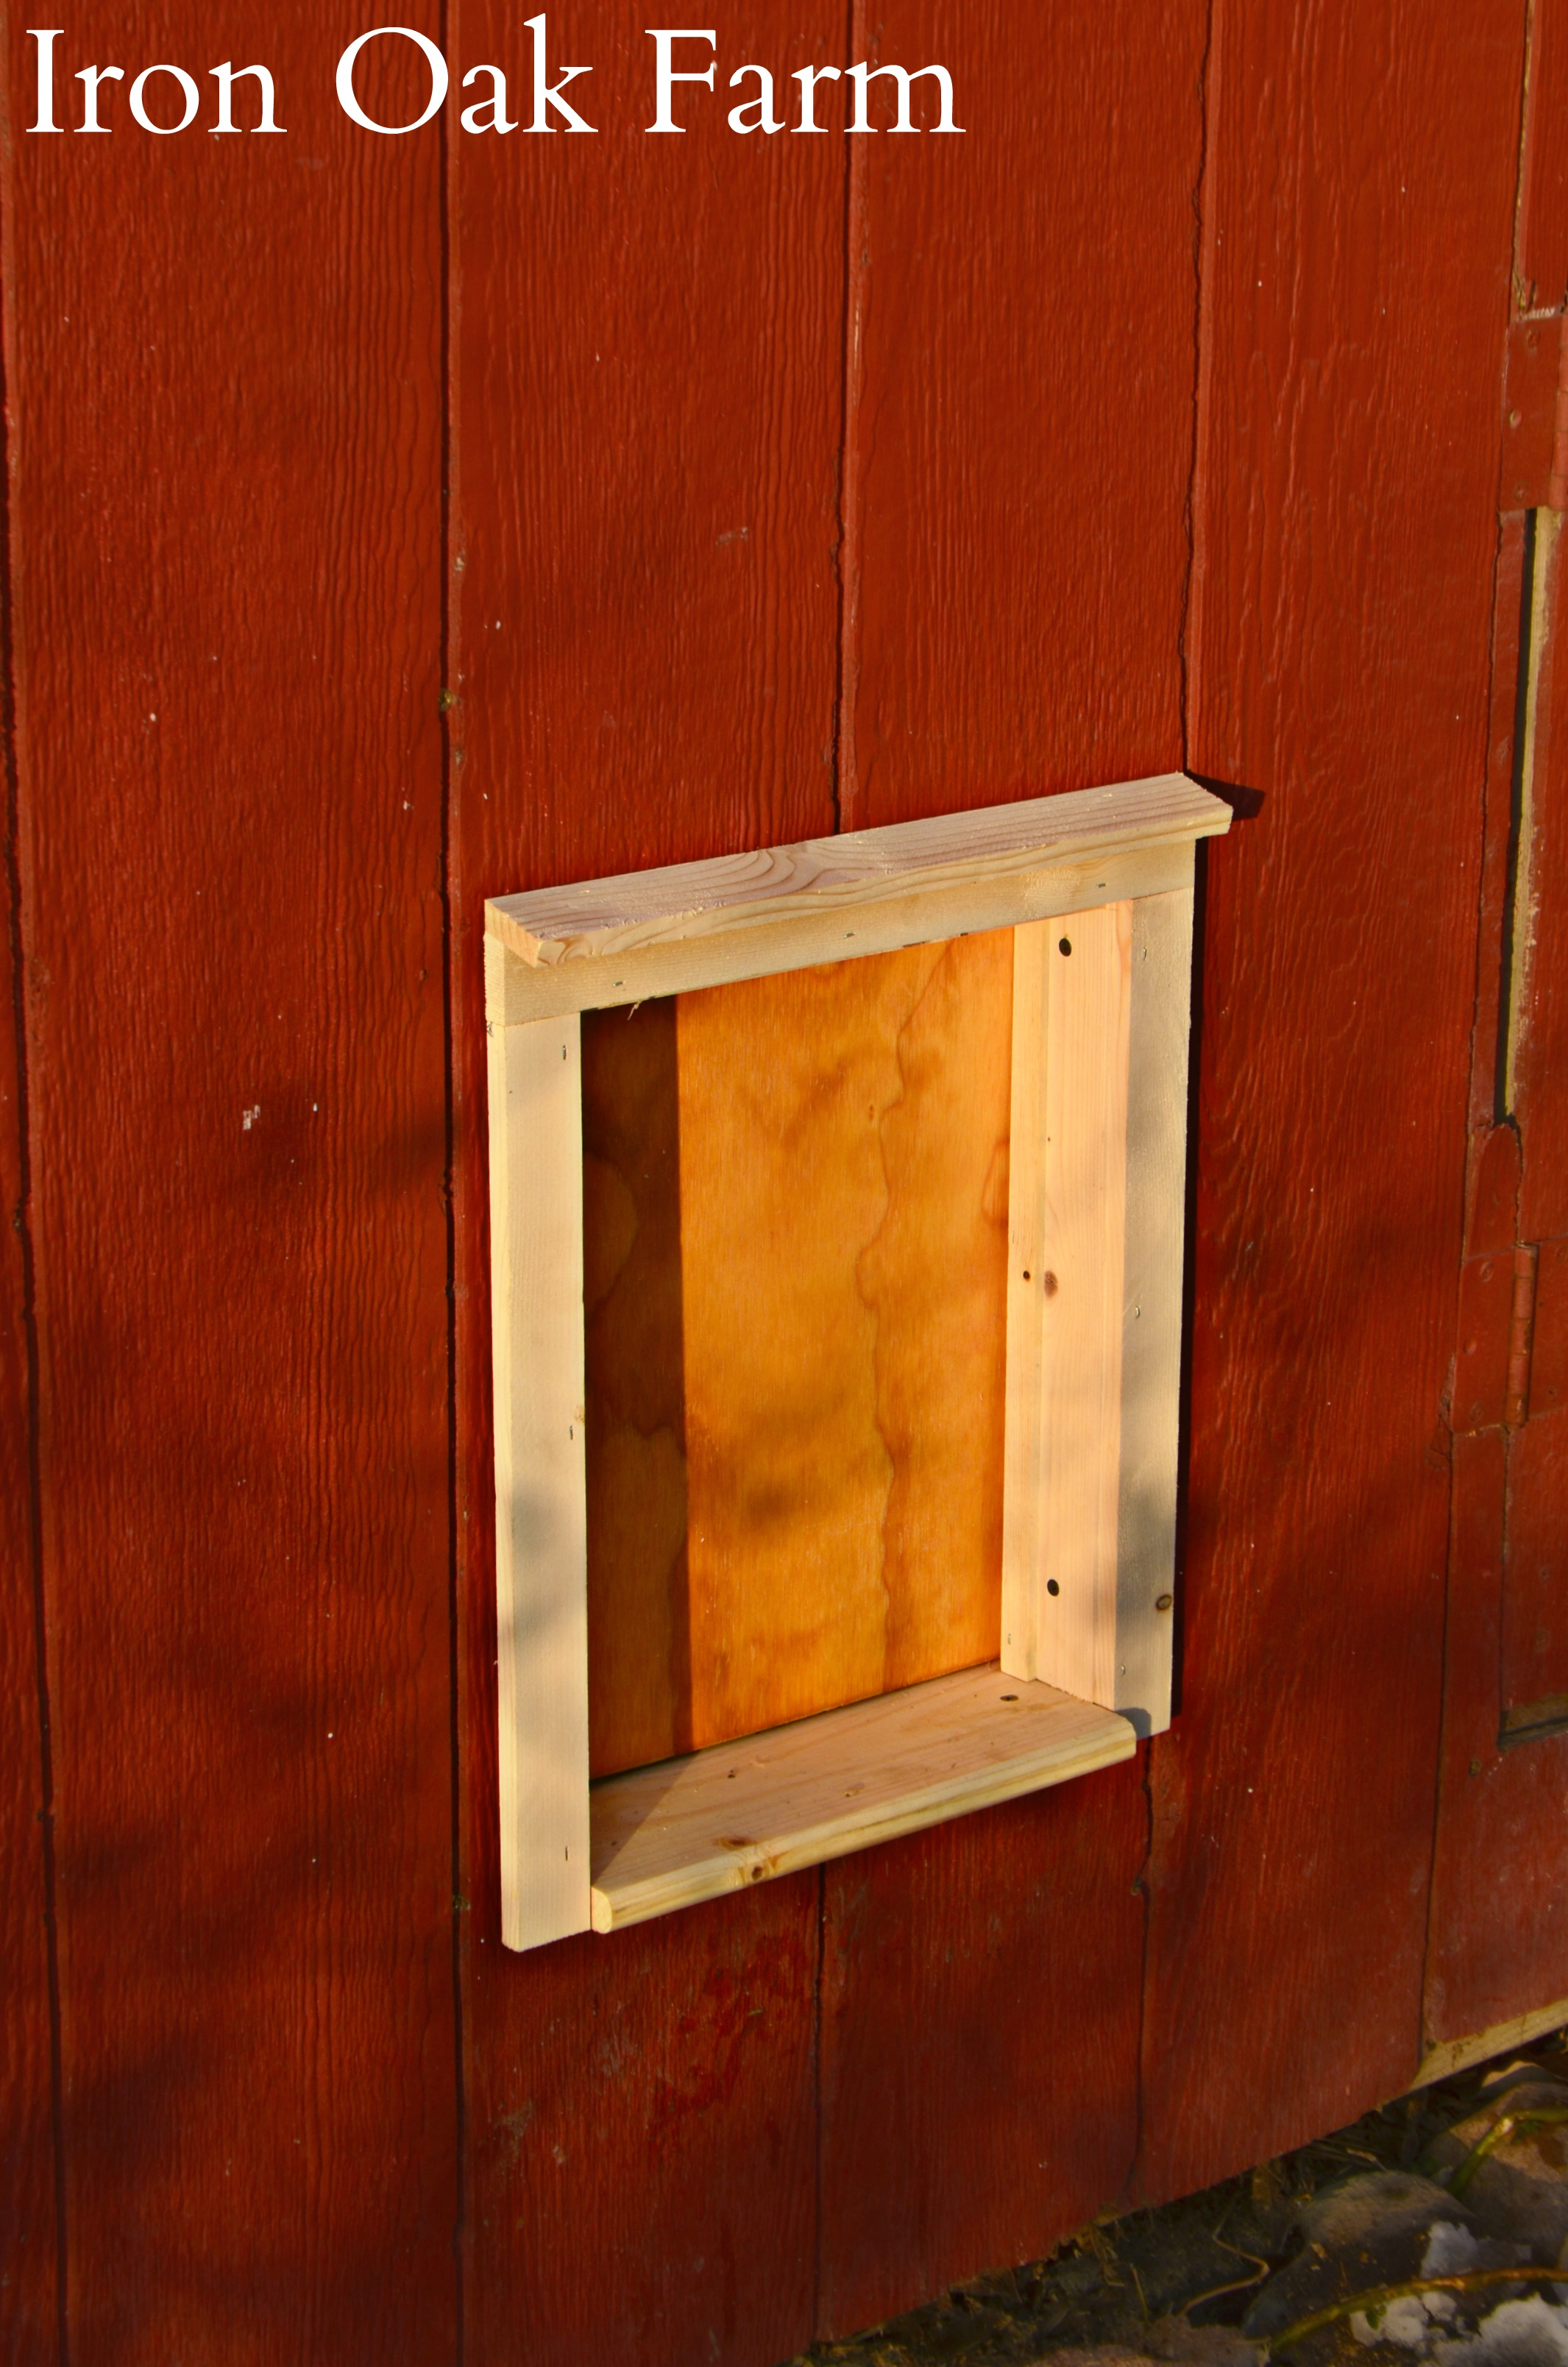 Automatic Chicken Coop Door Installation and Product Review | Community Chickens & Automatic Chicken Coop Door Installation and Product Review ...